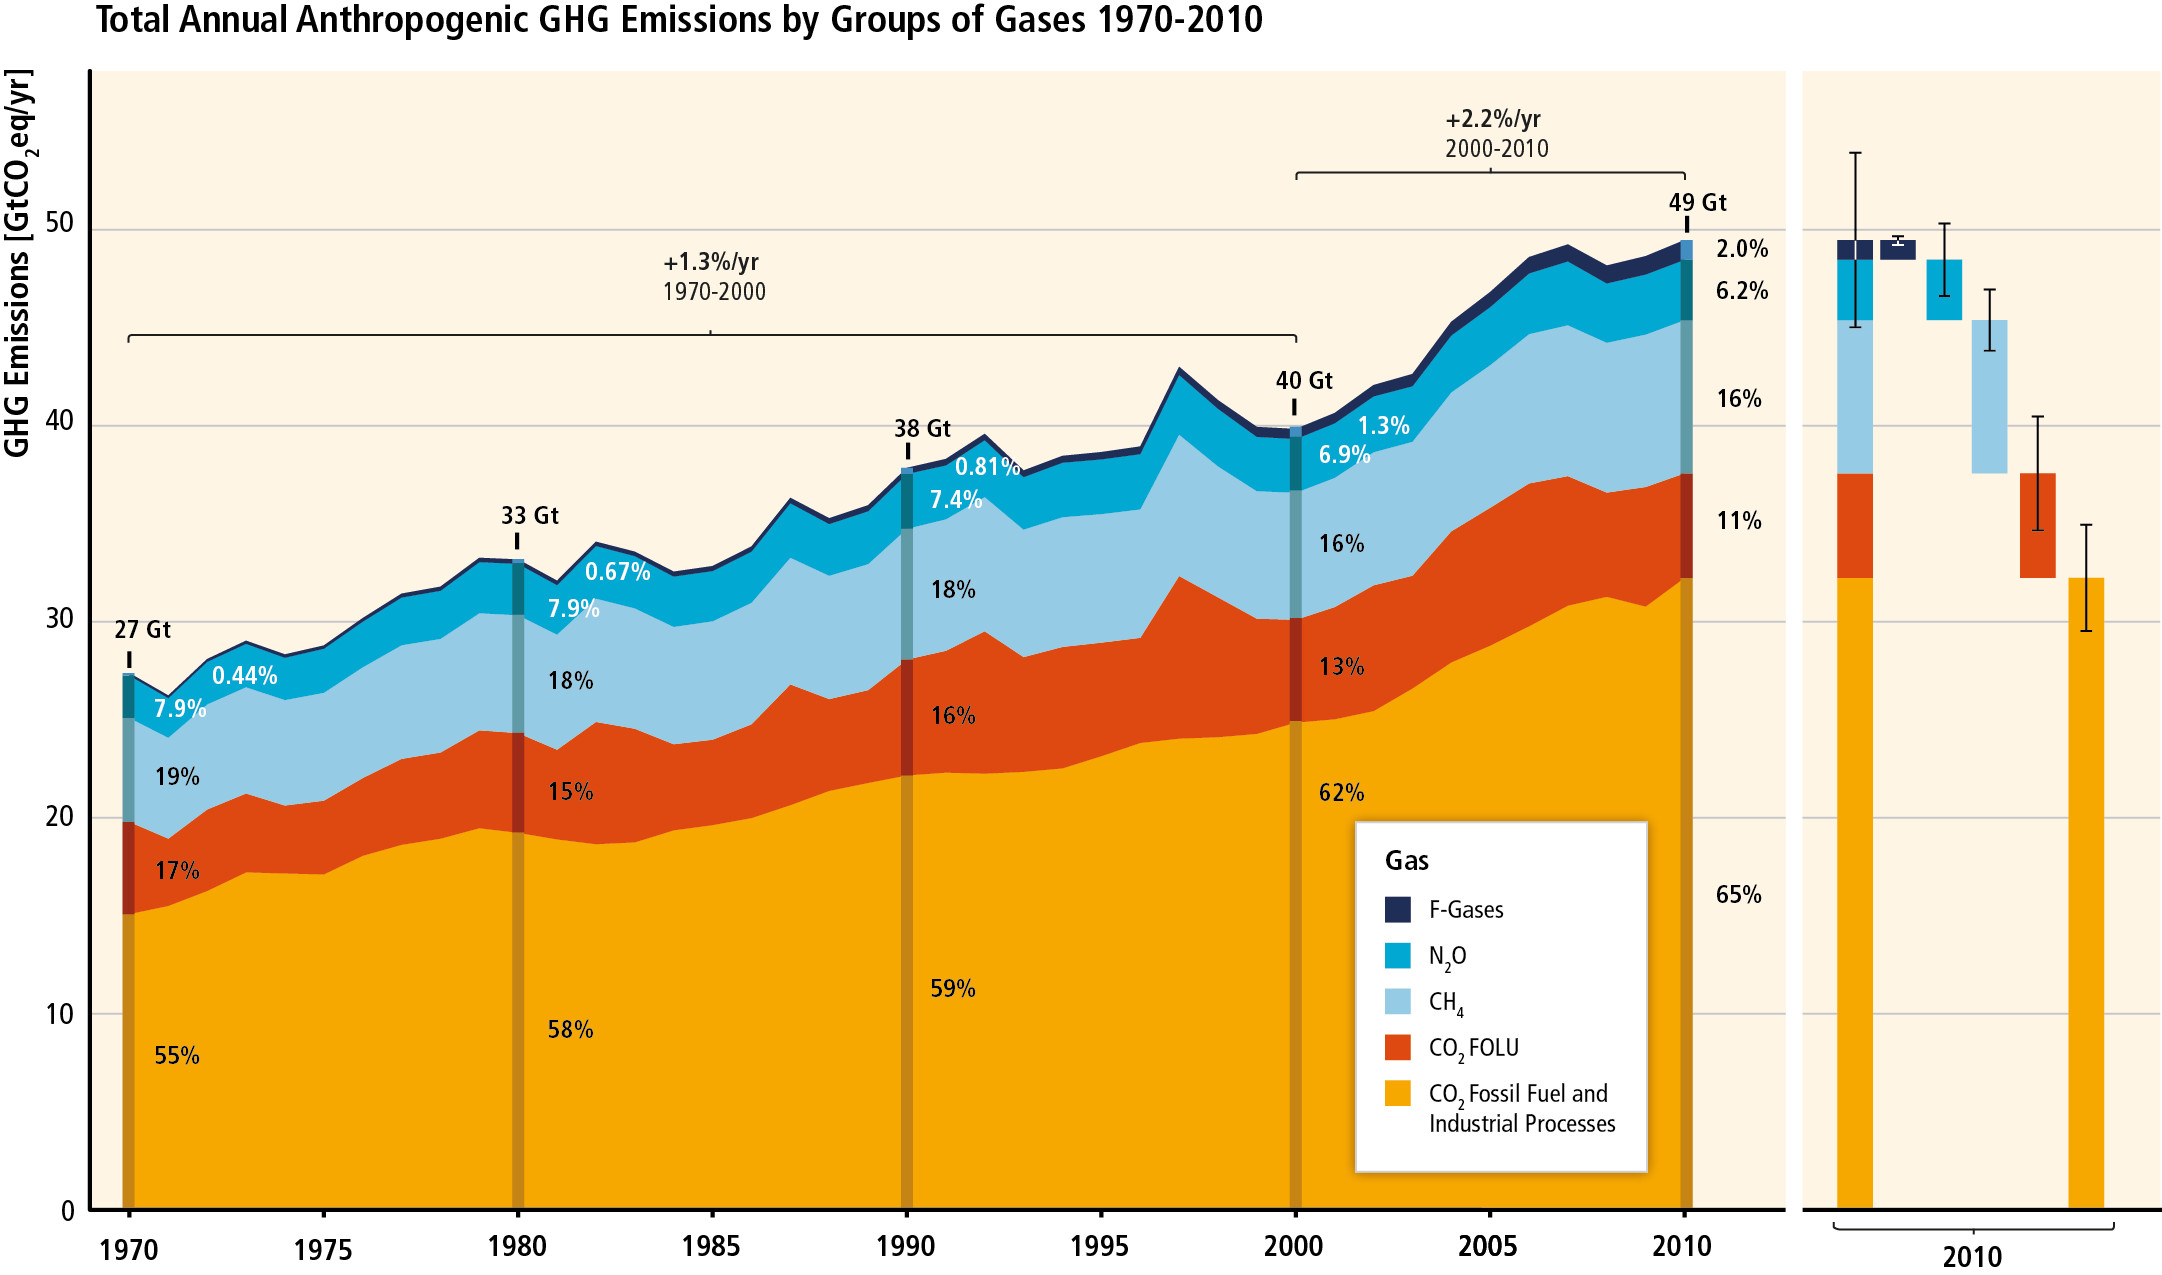 Anthropogenic greenhouse gas emissions from 1970 to 2010, subdivided by gas: CO2 from fossil fuels and industrial processes (orange); CO2 from forests and other soil uses (red); methane CH4 (light blue); nitrous oxide N2O (turquoise blue); fluorinated gases (blue).